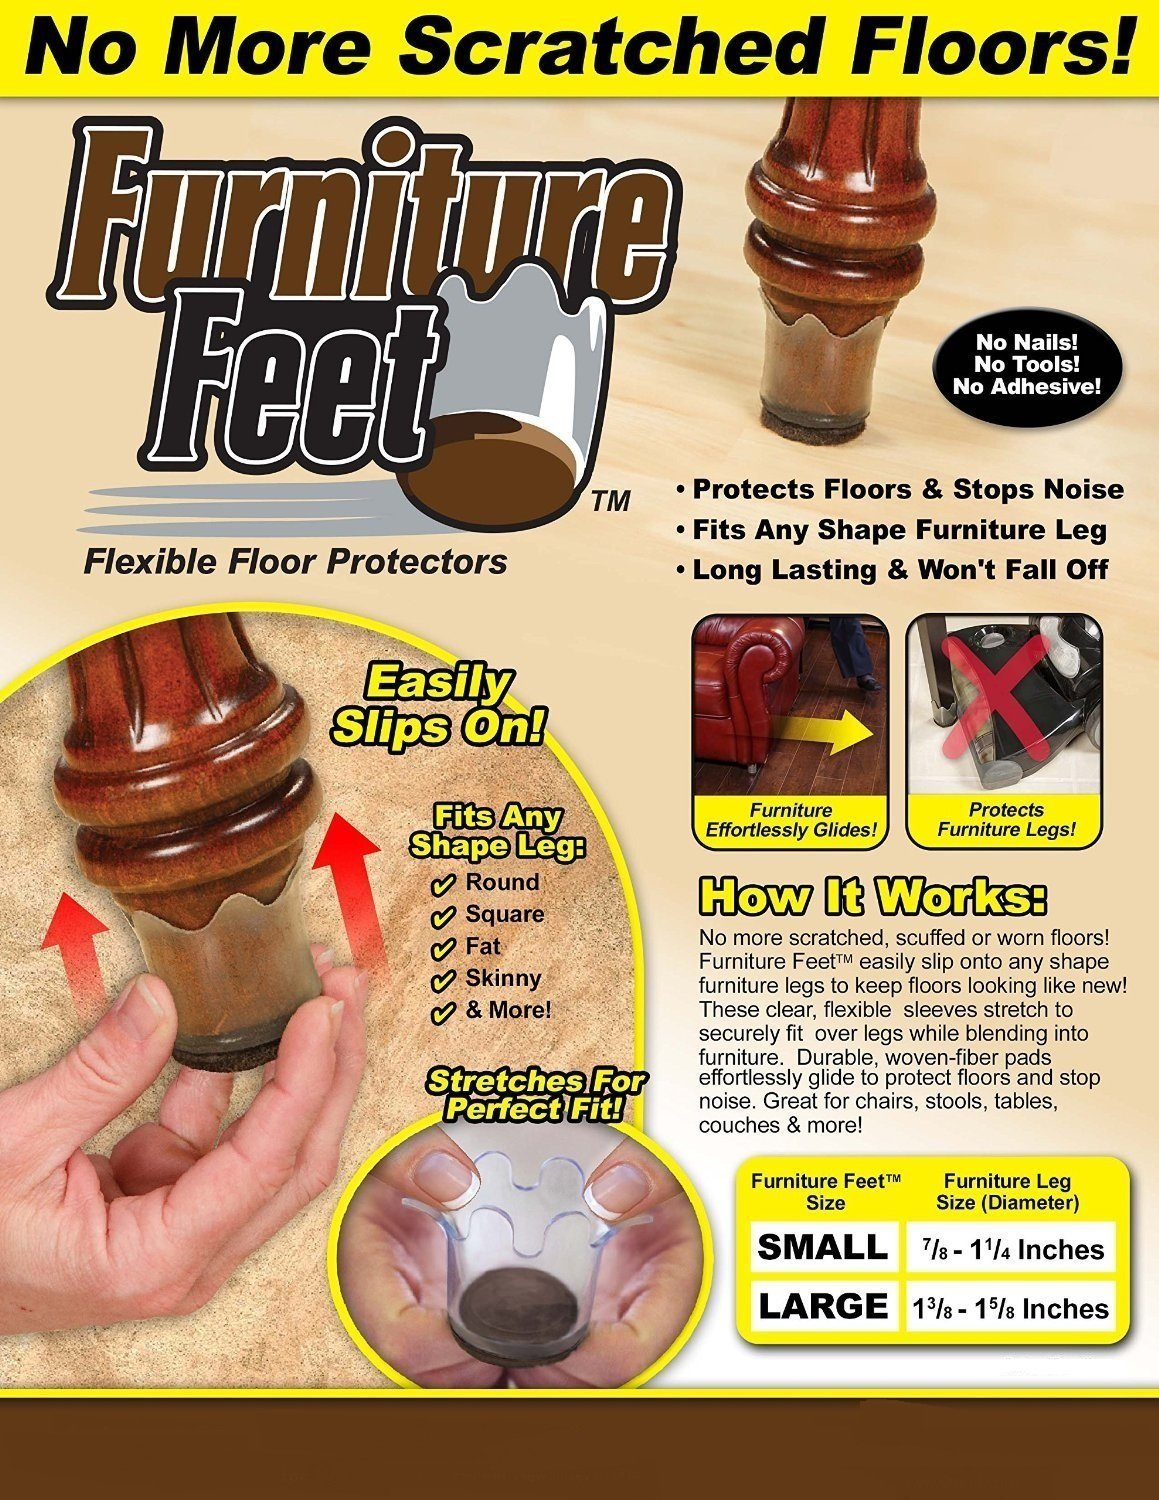 Ferryman Furniture Feet Flexible Floor Protectors - 16pc Value Pack (Small, Fits Legs 7/8''-1 1/4'')